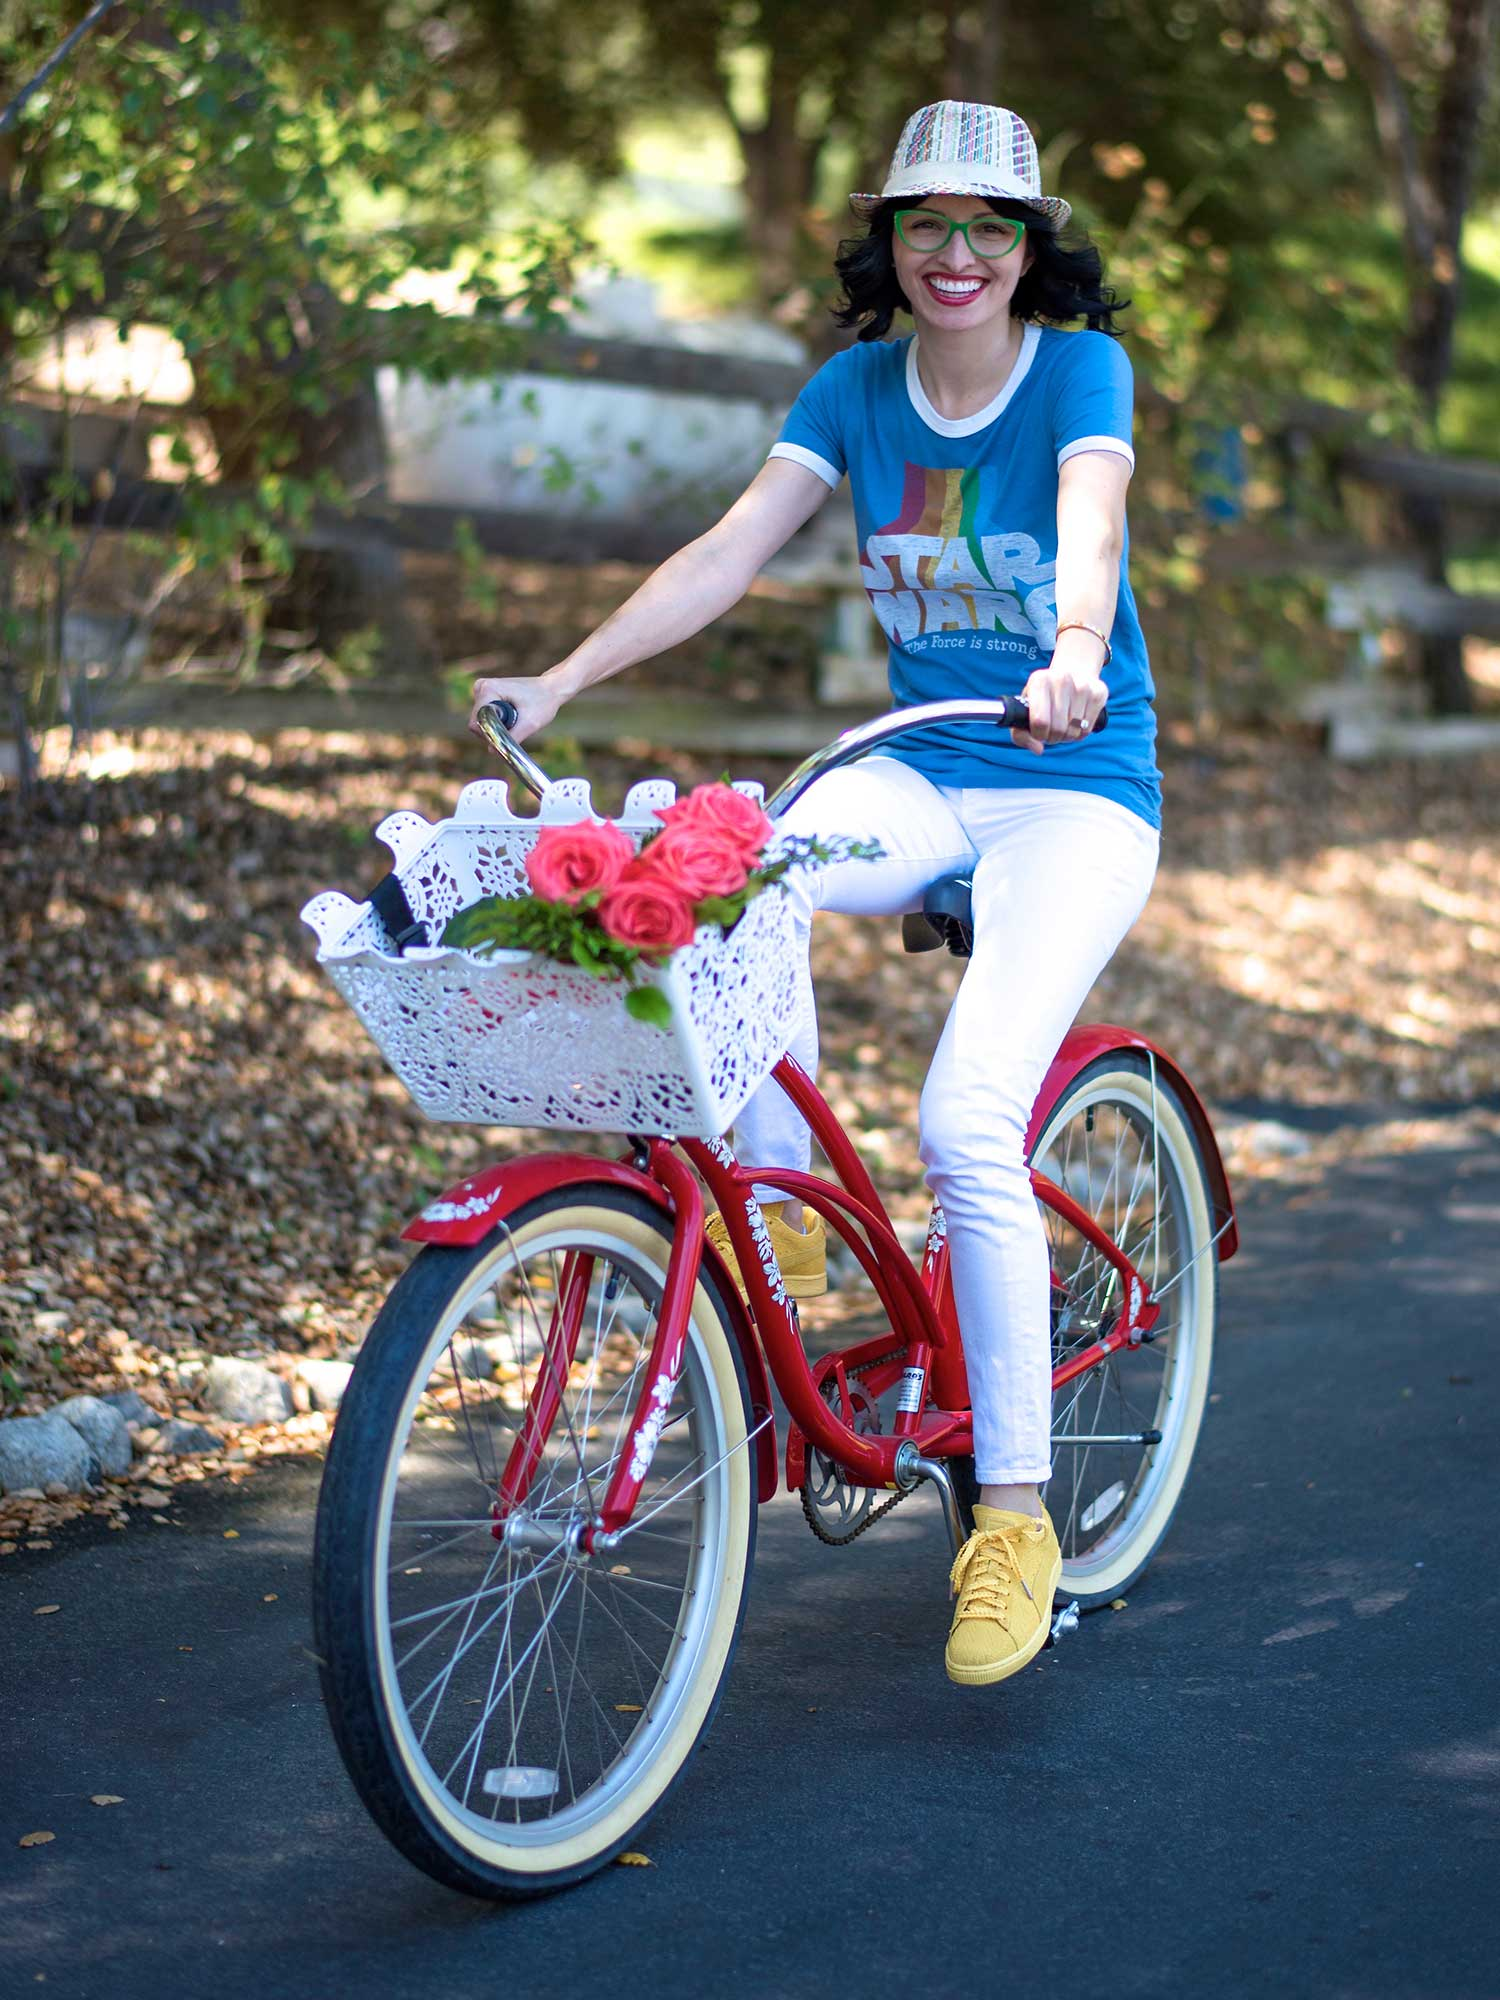 Jenna-Pilant-Lucky-Little-Mustardseed-Style-Crazed-How-To-Dress-Cute-On-A-Bike-Ride-1